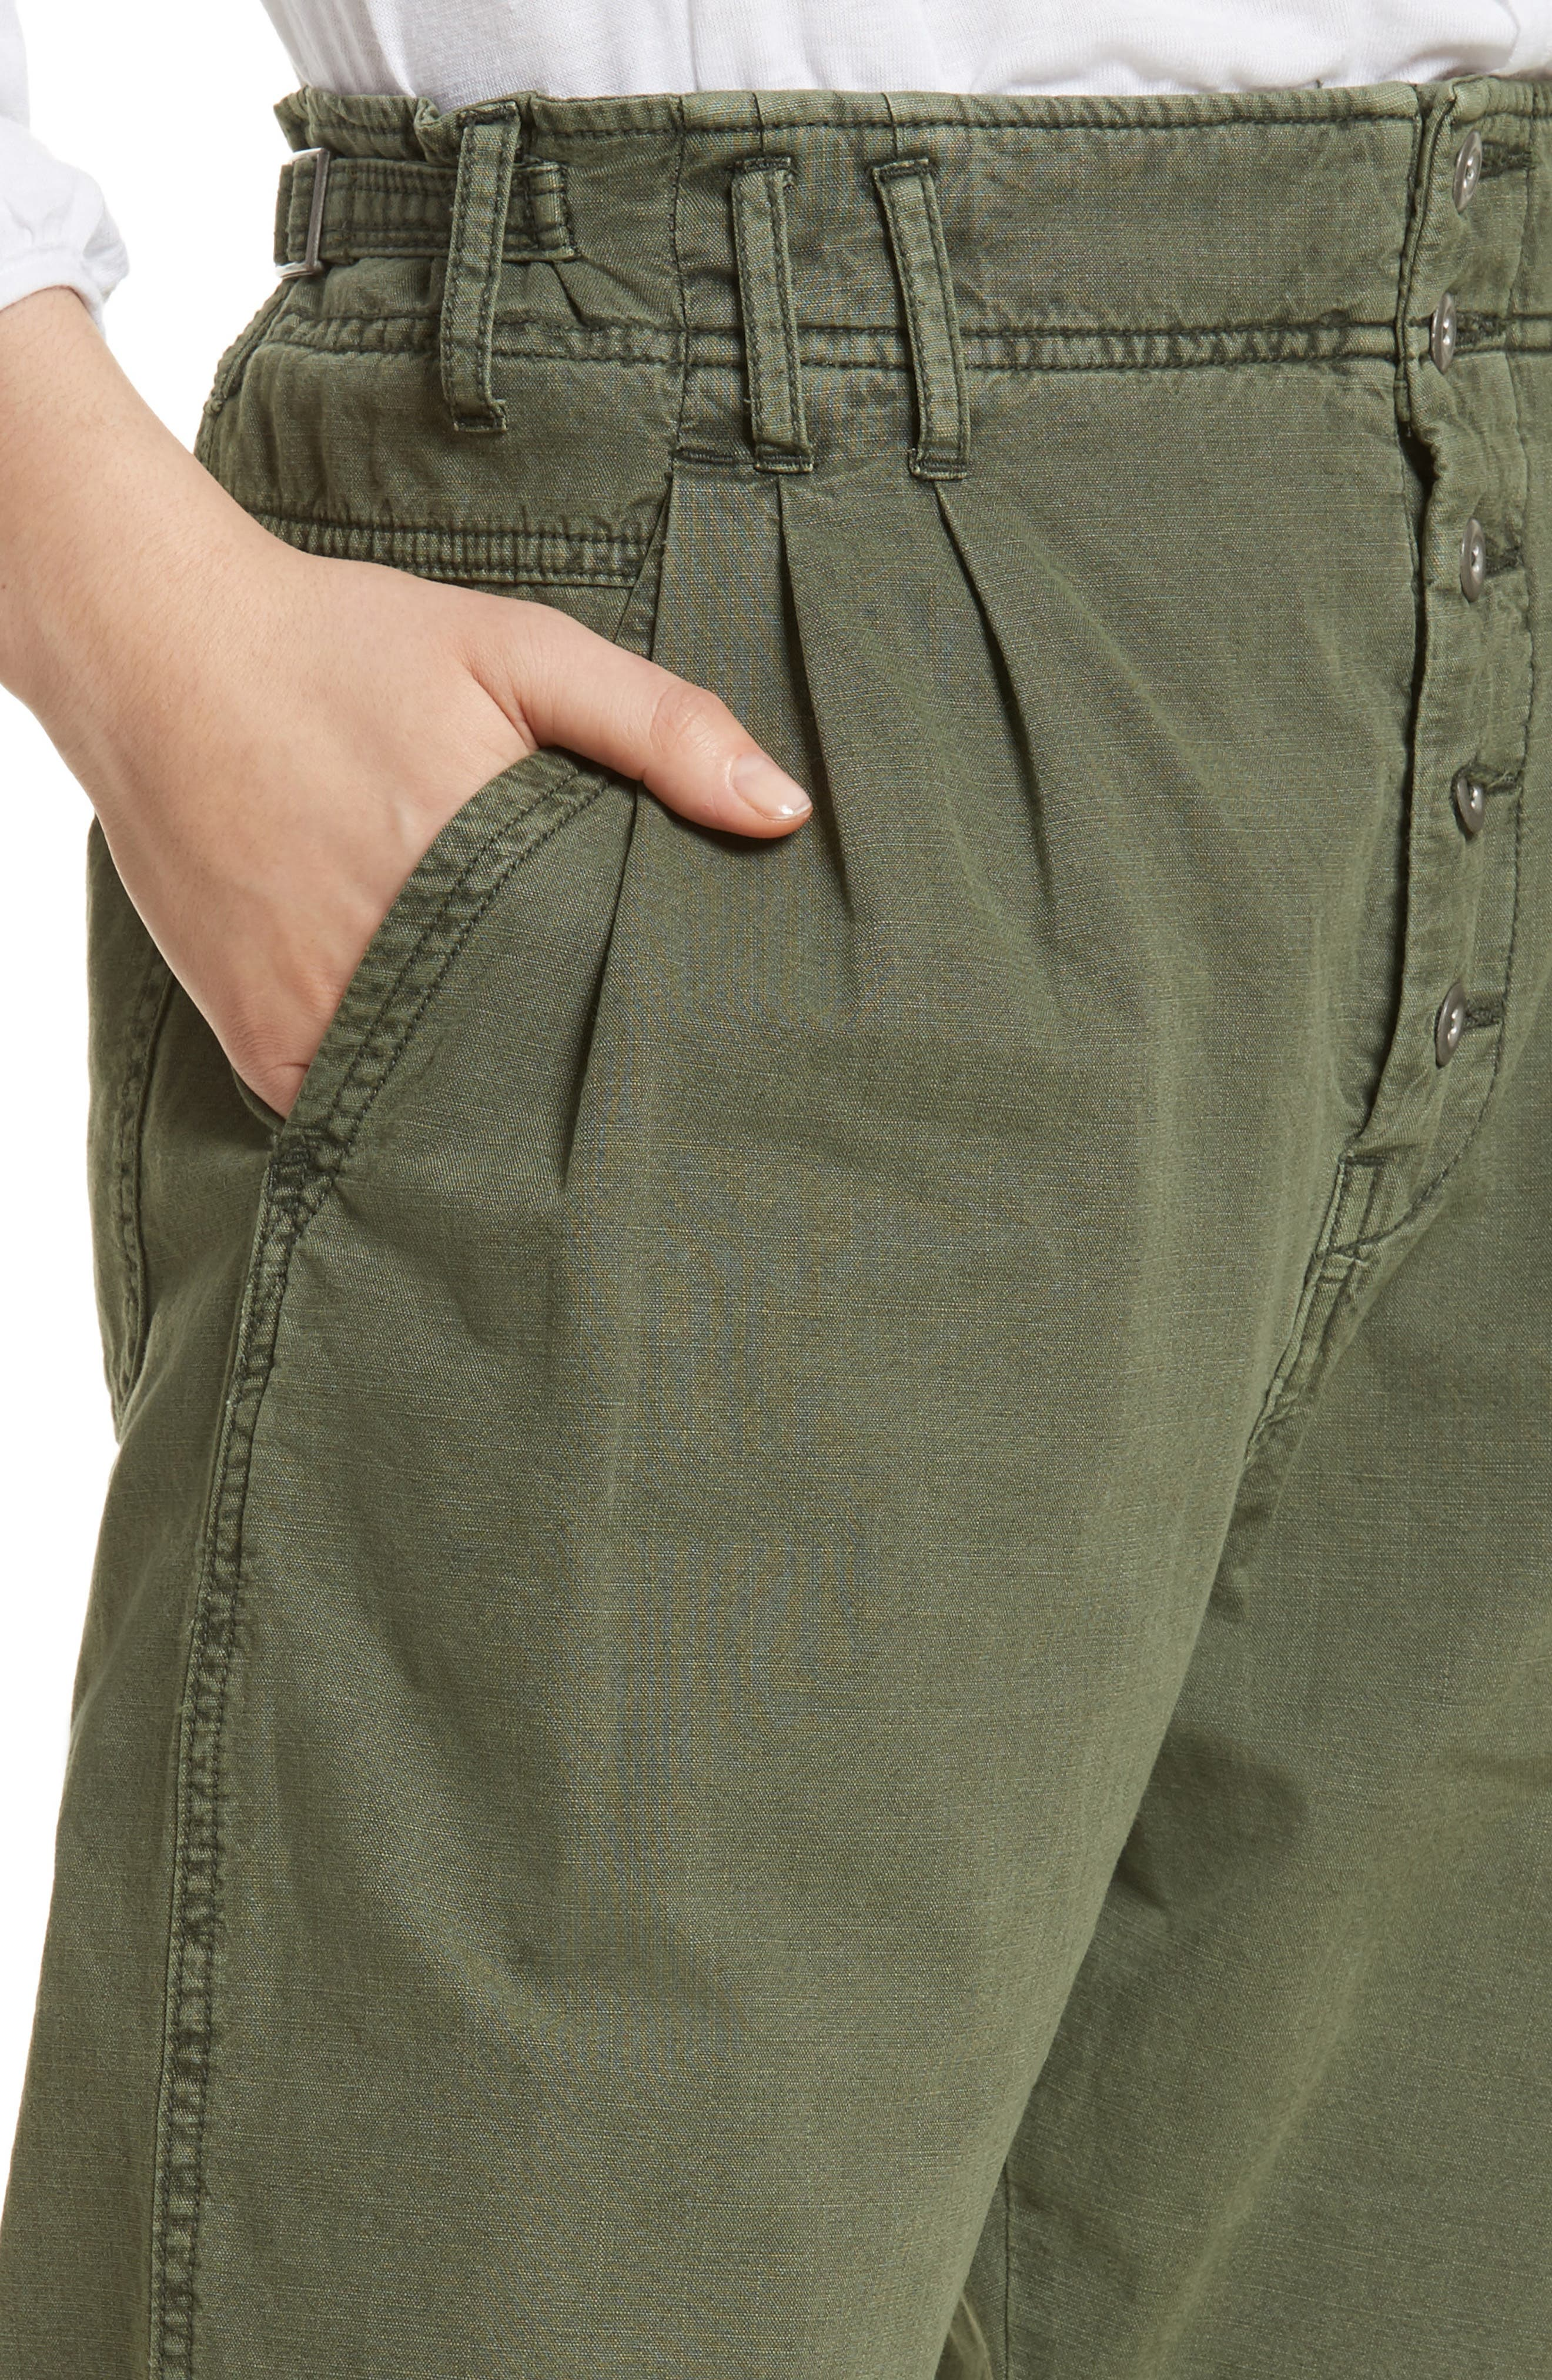 Compass Star Trousers,                             Alternate thumbnail 4, color,                             Slate